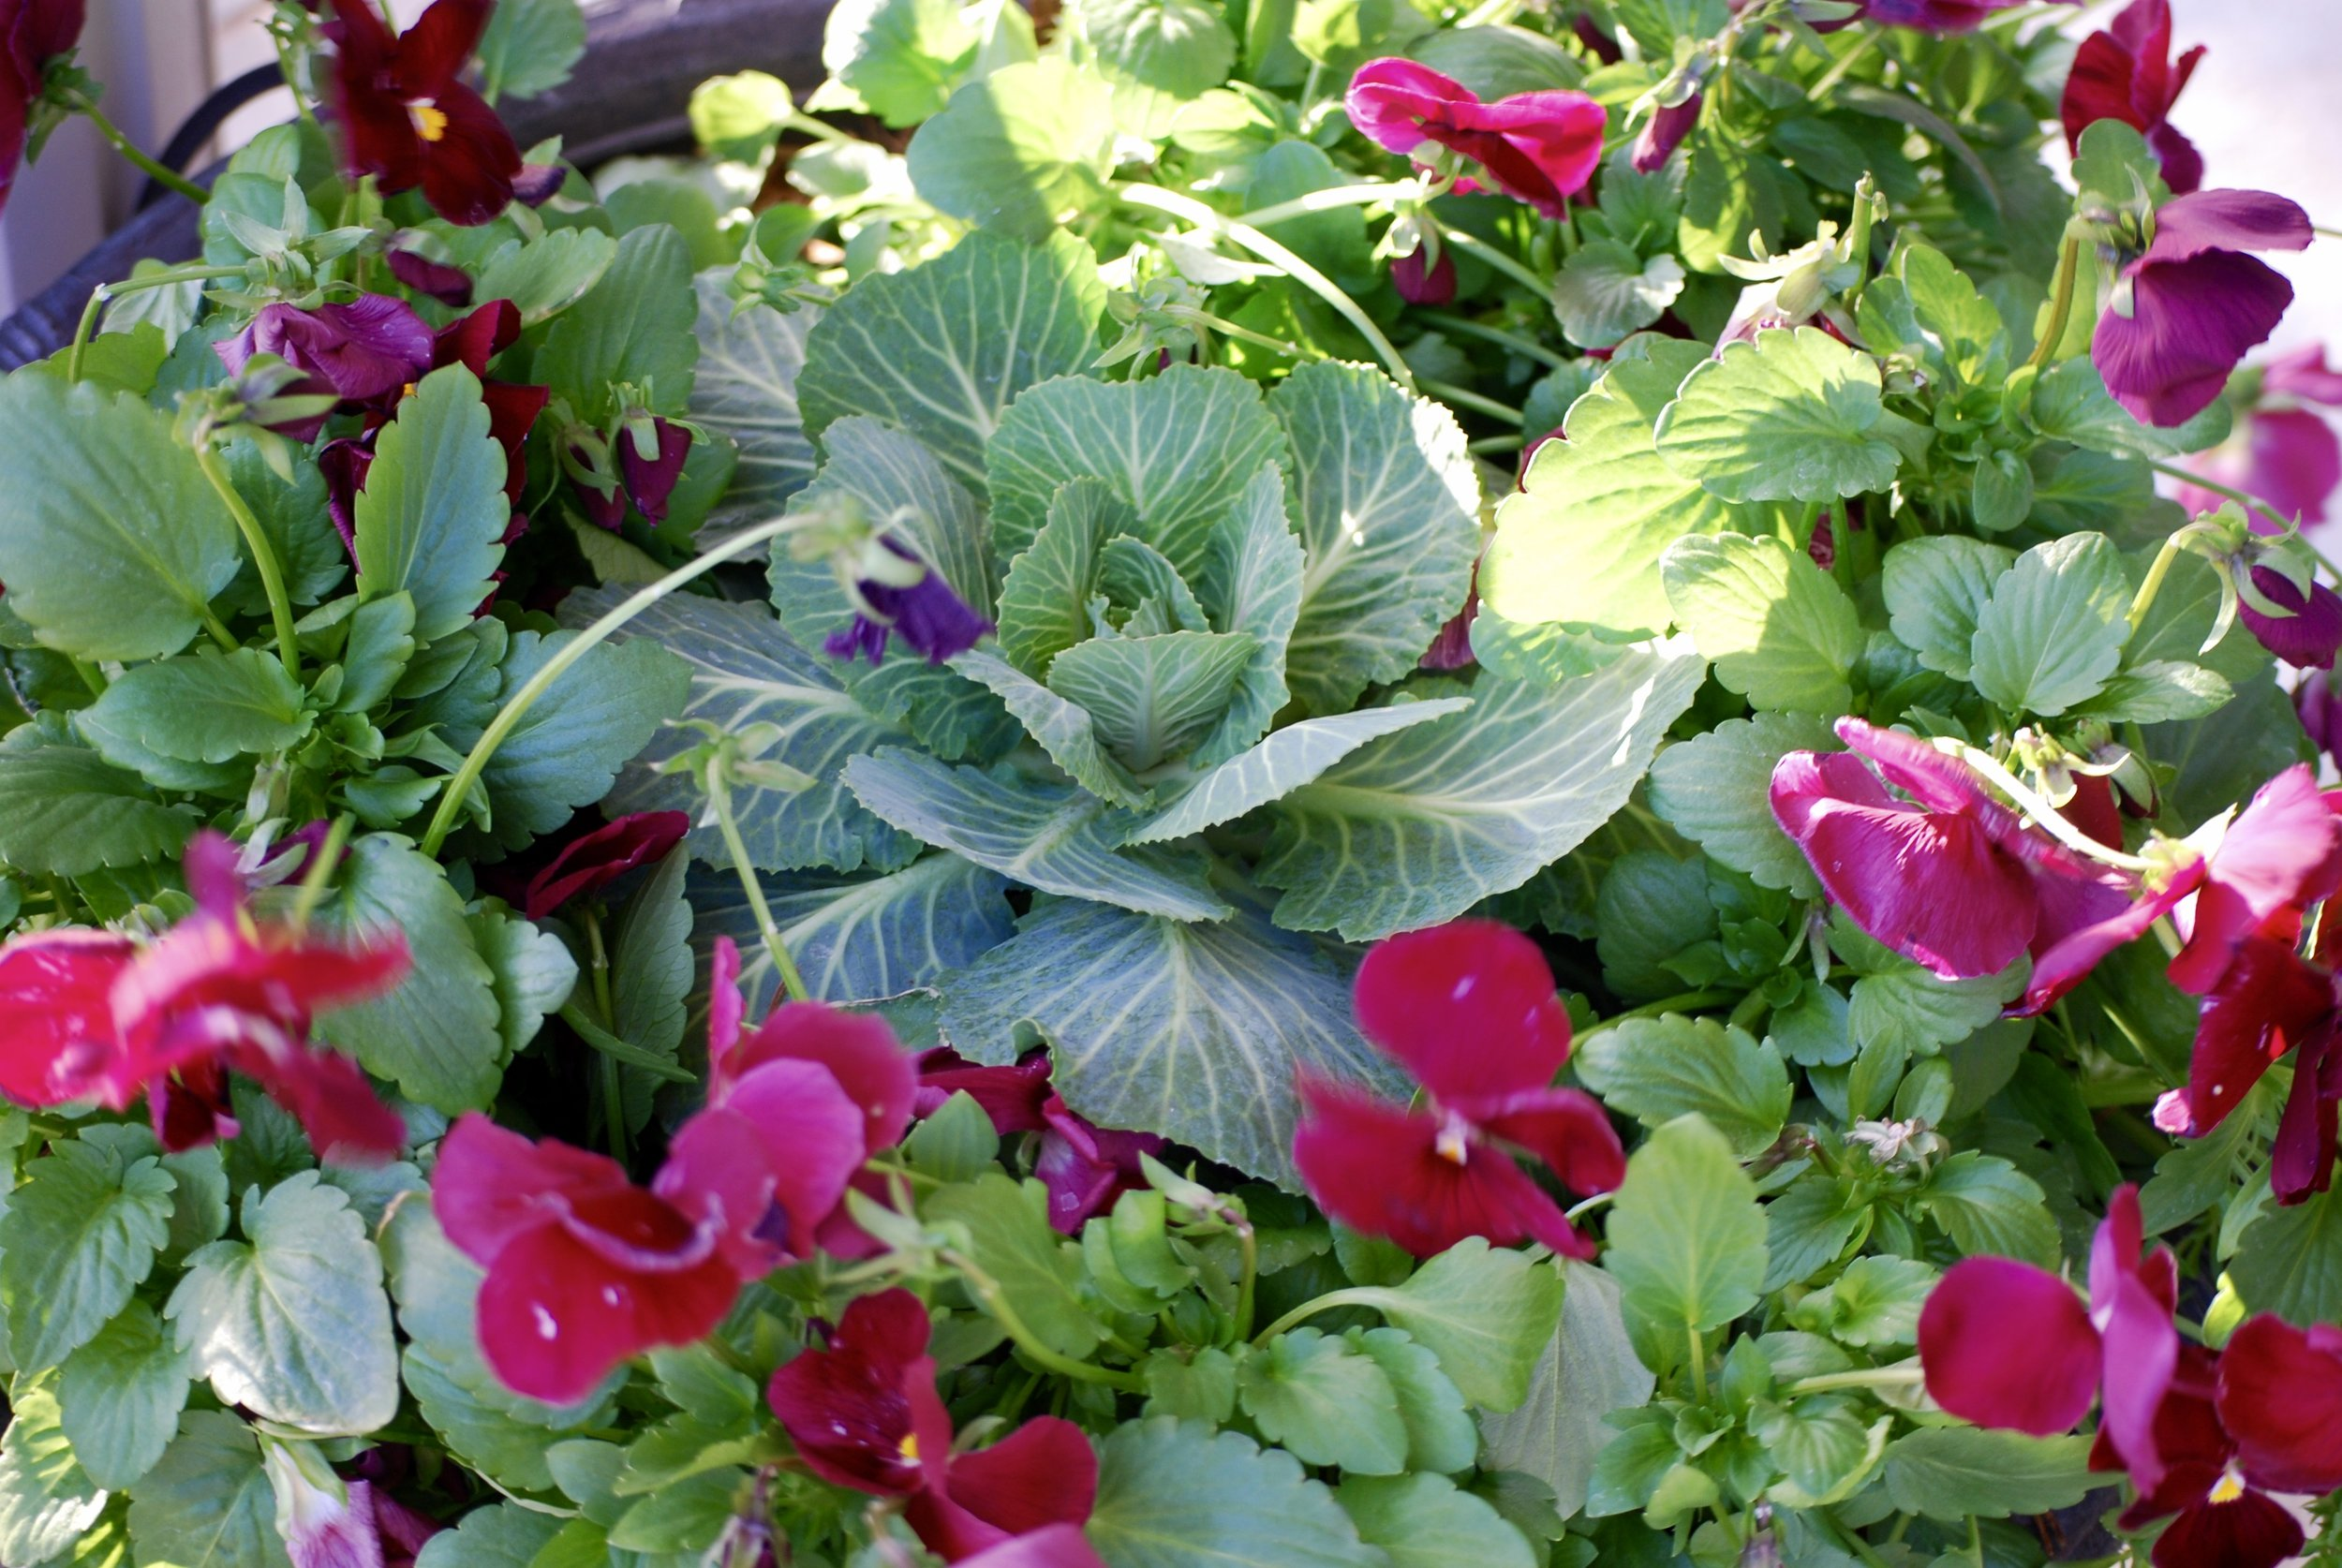 It's all about the curb appeal  So, what's the big deal about container gardening anyway and why do I love it? Three words: INSTANT CURB APPEAL. Container gardening is an easy, inexpensive way to create an attractive, welcoming first impression for your home or business. Custom containers gardens that match your style and personality will wow your friends and customers and offer beauty and a pop of color. And we all know the old saying, you don't get a second chance to make a first impression.